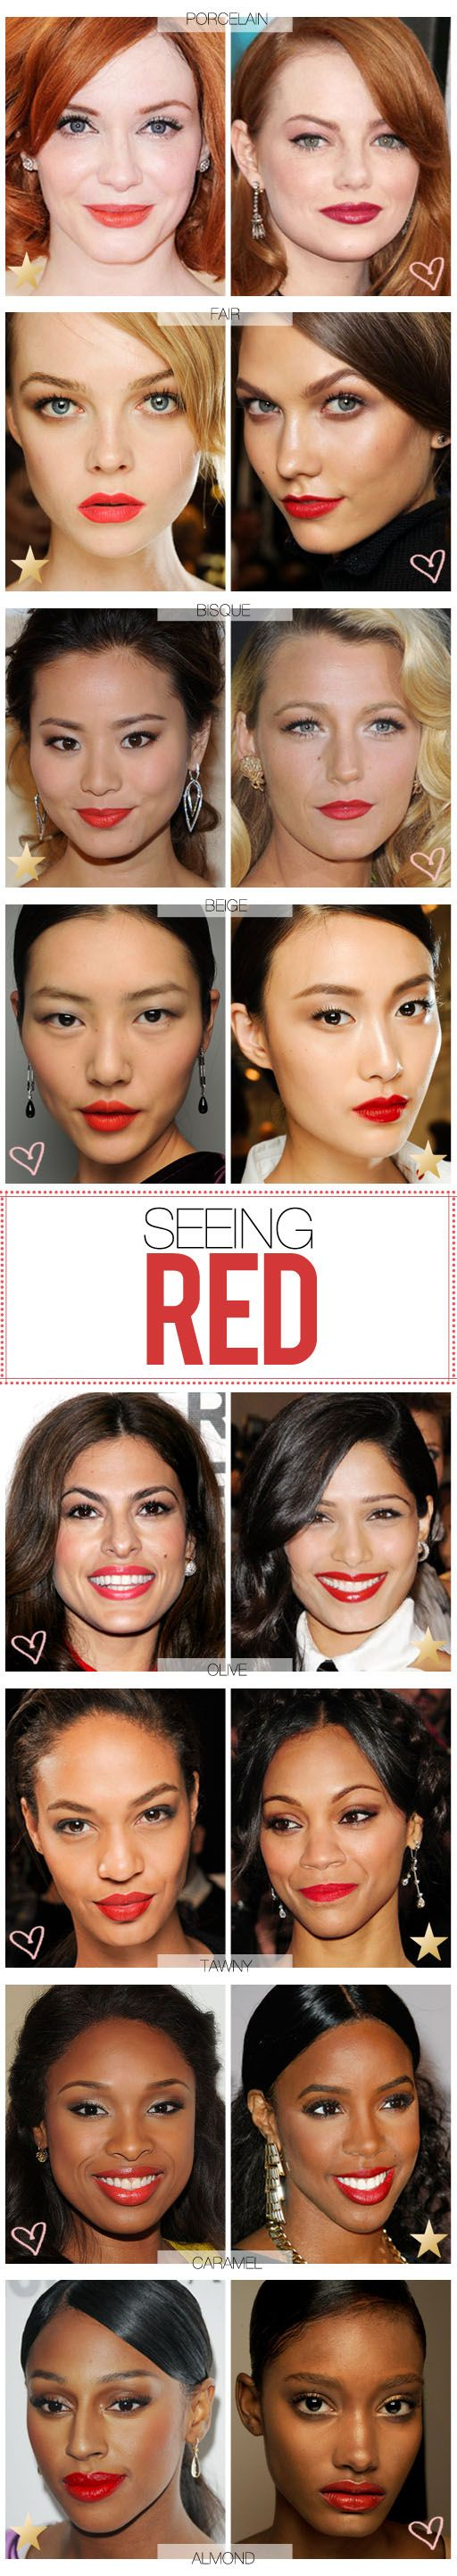 TBD red lips